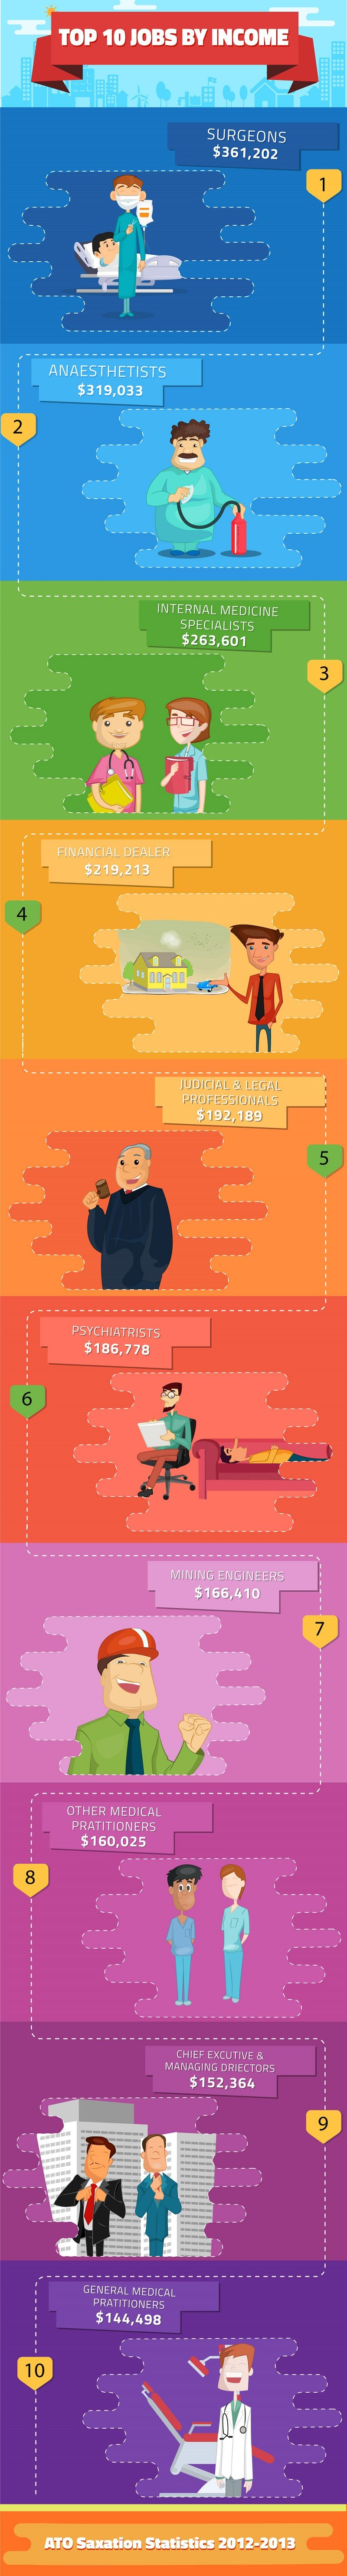 10 Best-Paying Jobs in Australia #infographic